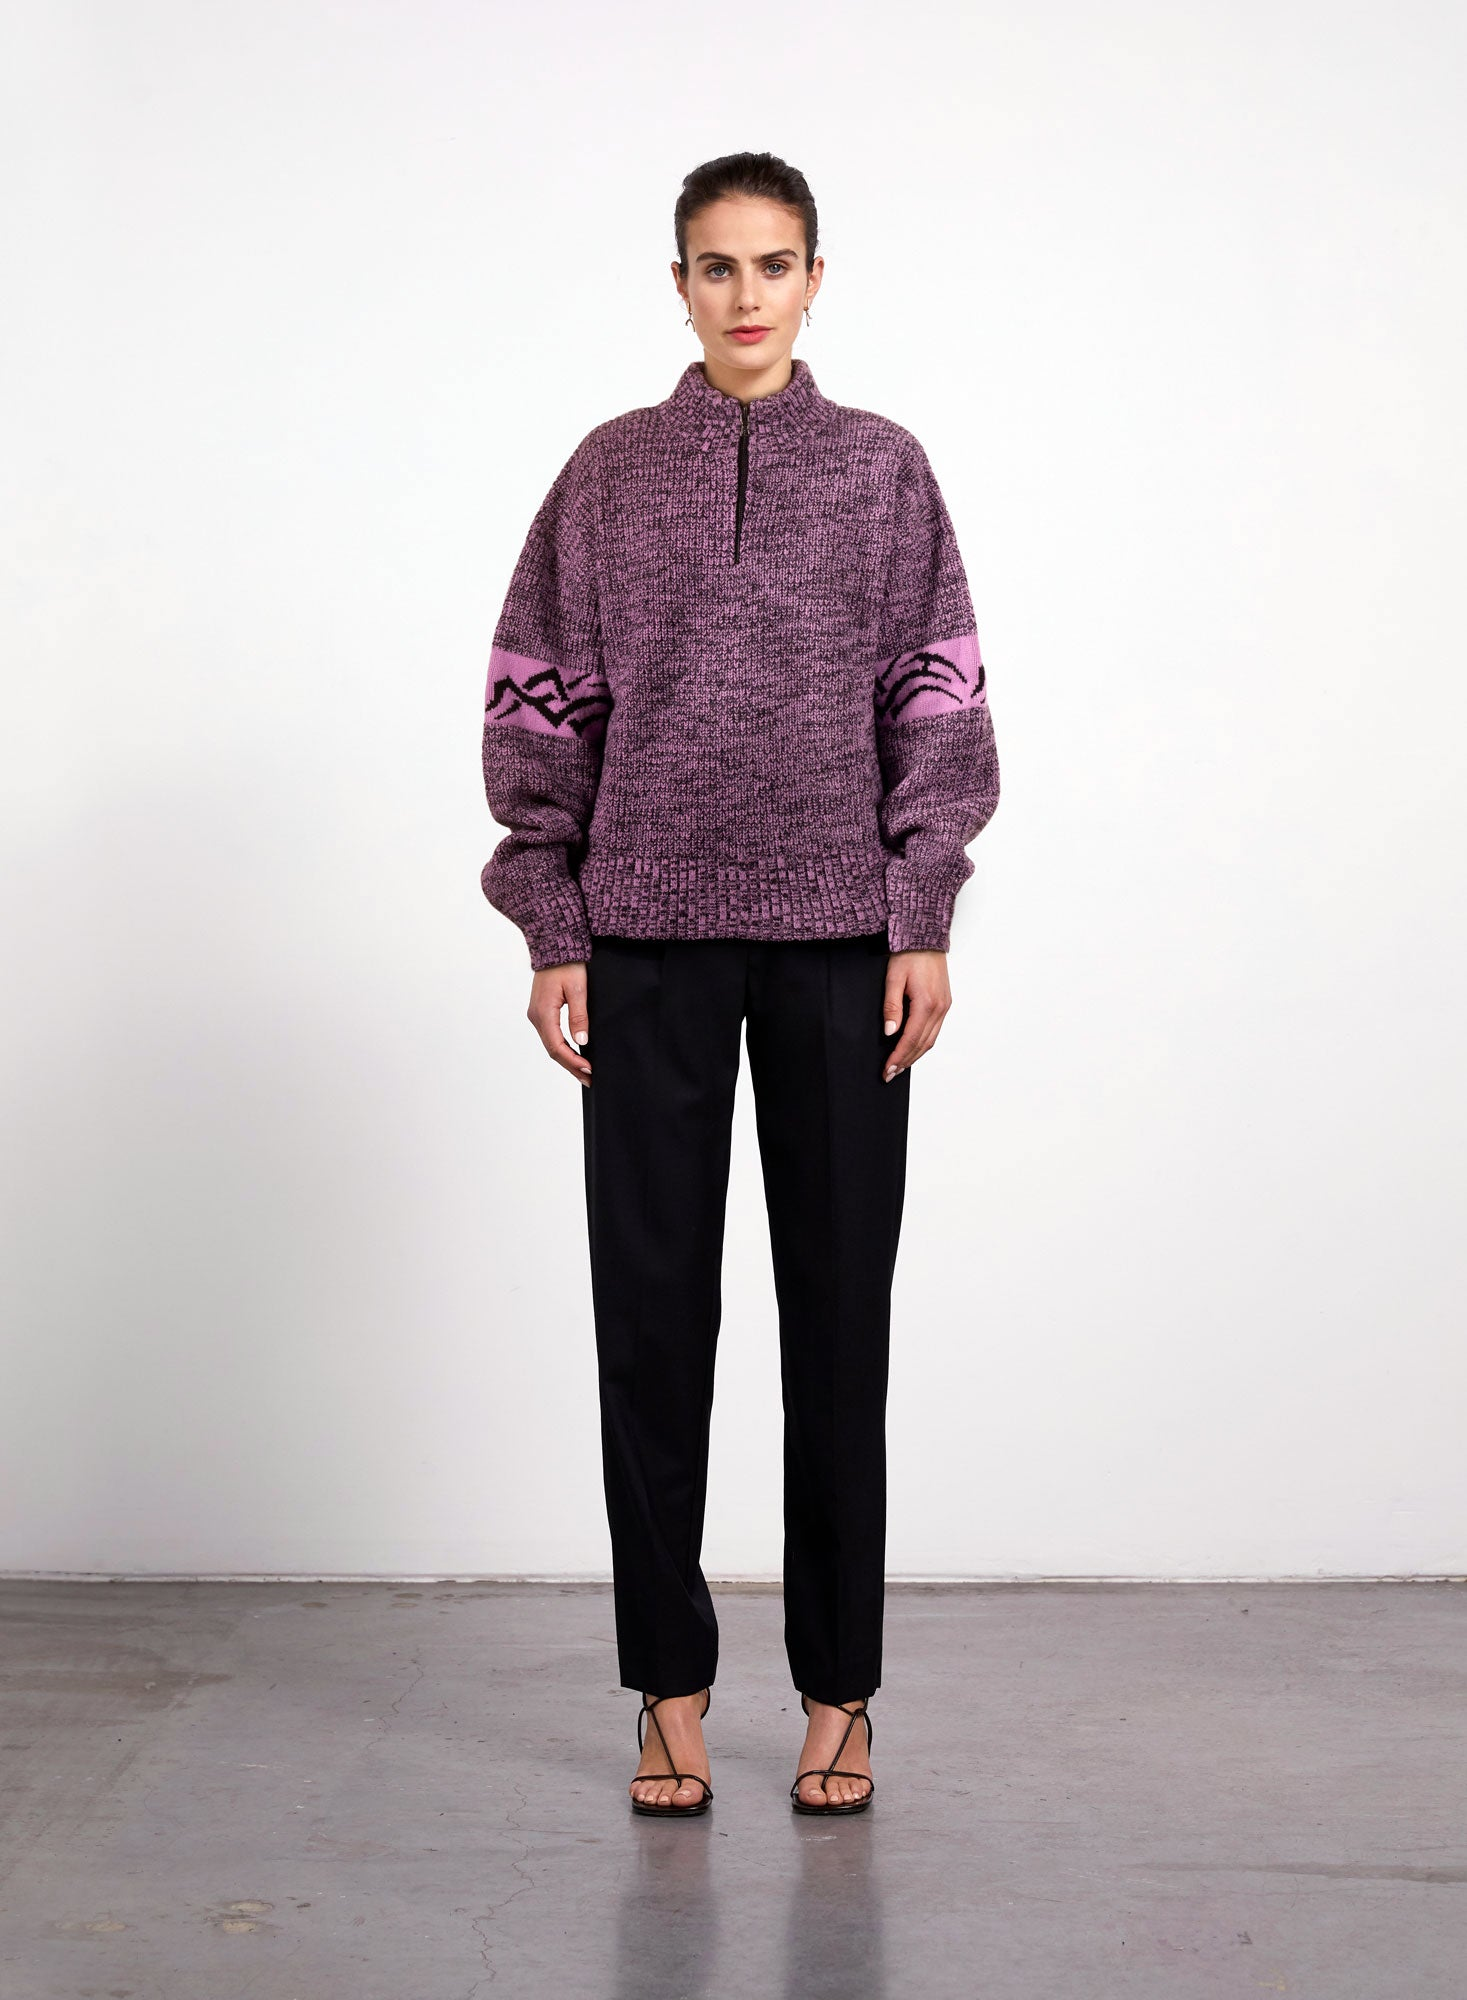 Chrystal Voyager Sweater - Purple Melange